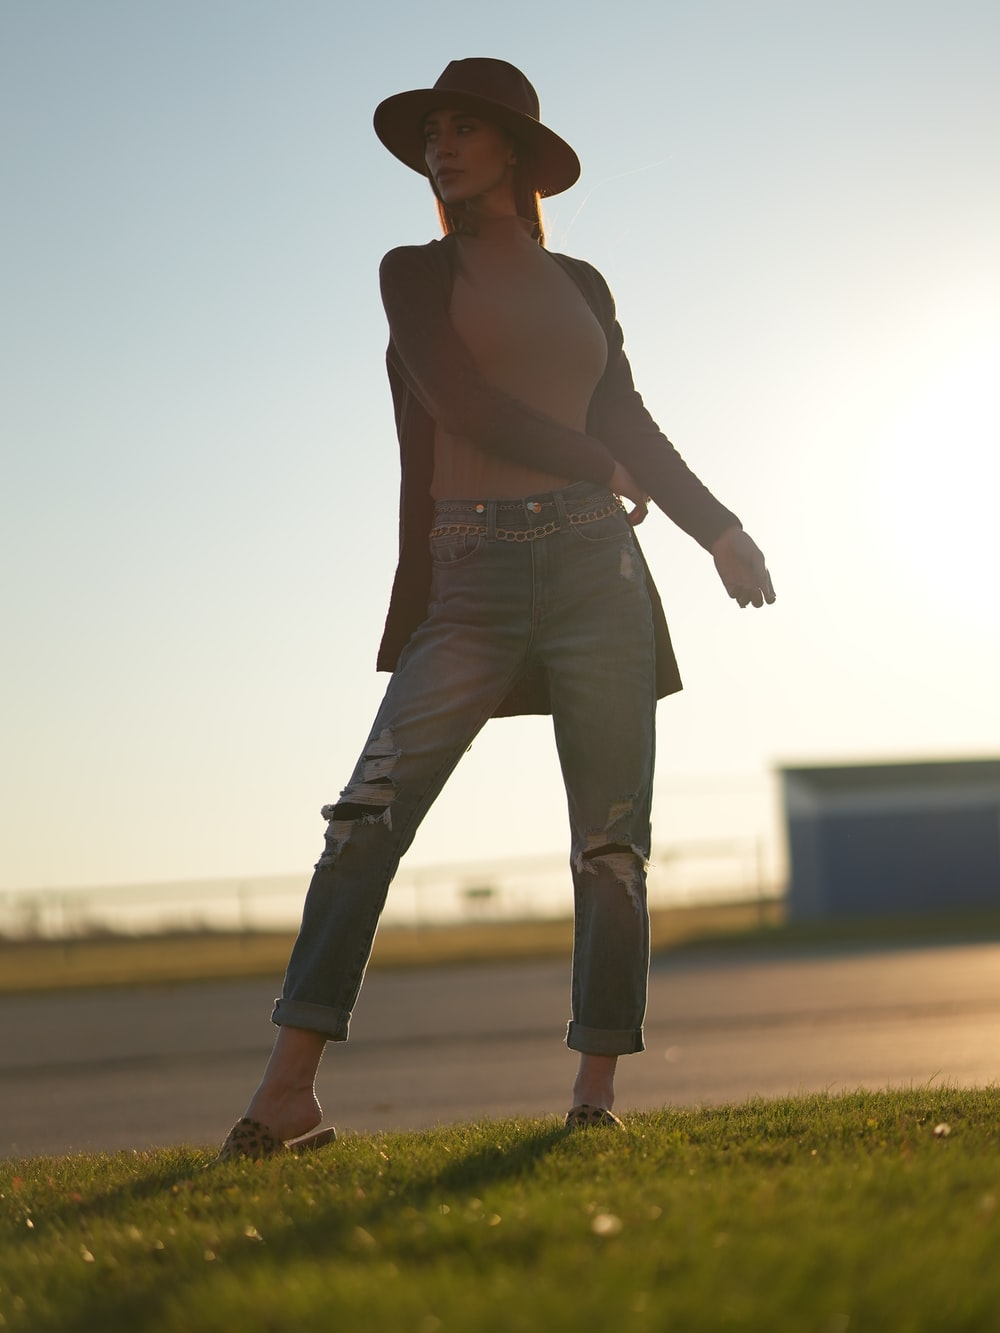 woman in brown tank top and gray pants standing on green grass field during daytime